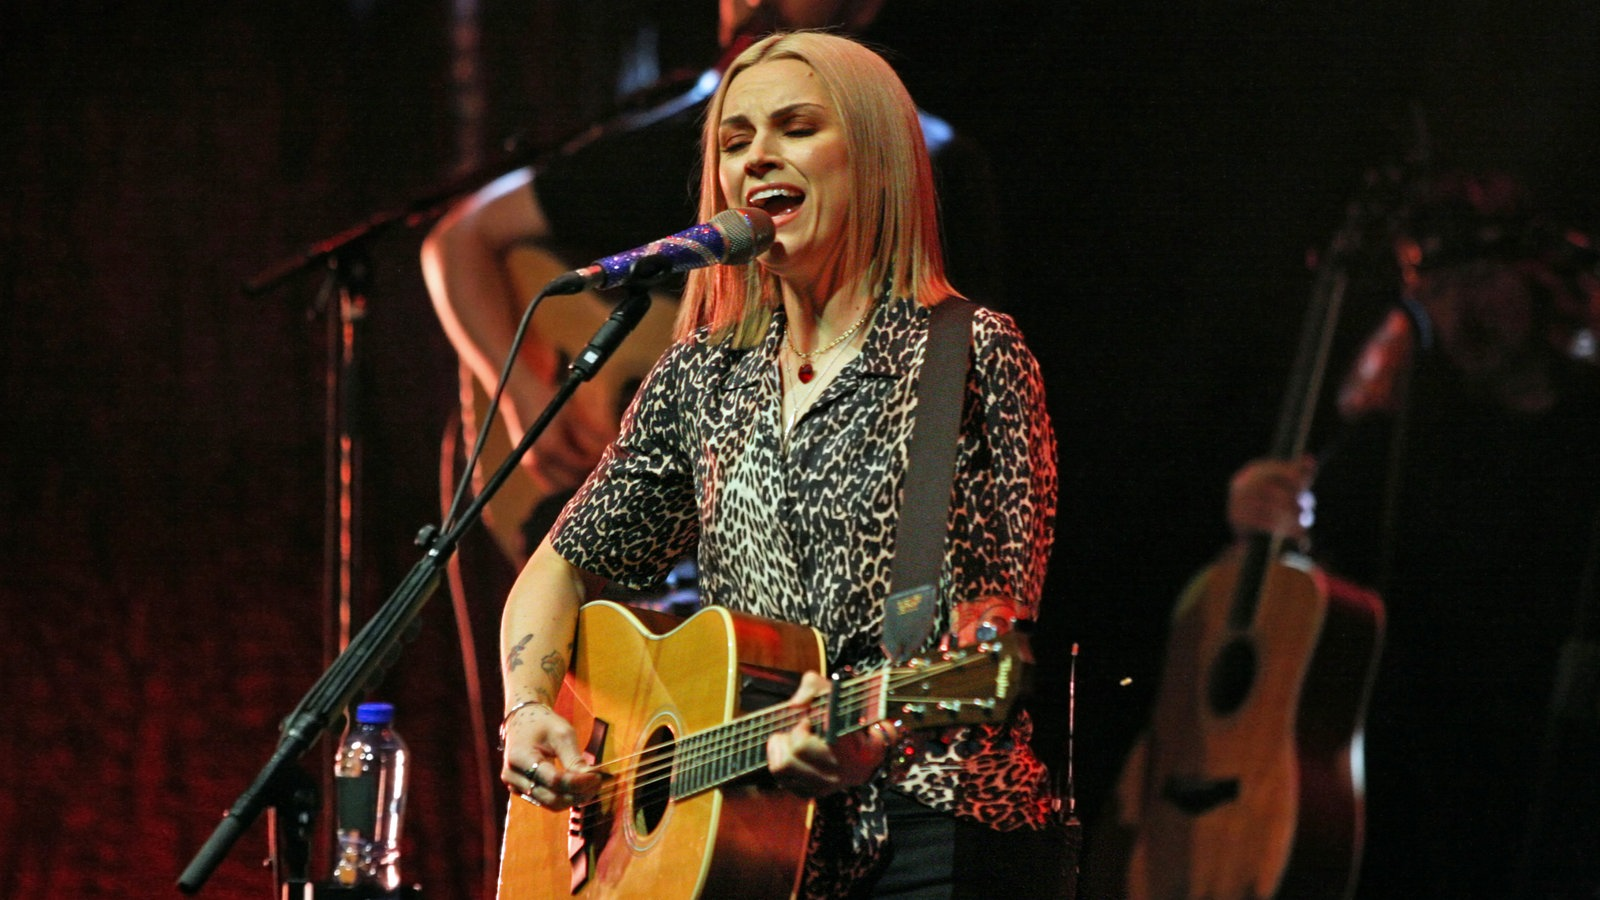 Amy Macdonald is not stingy at the Coliseum with great emotions